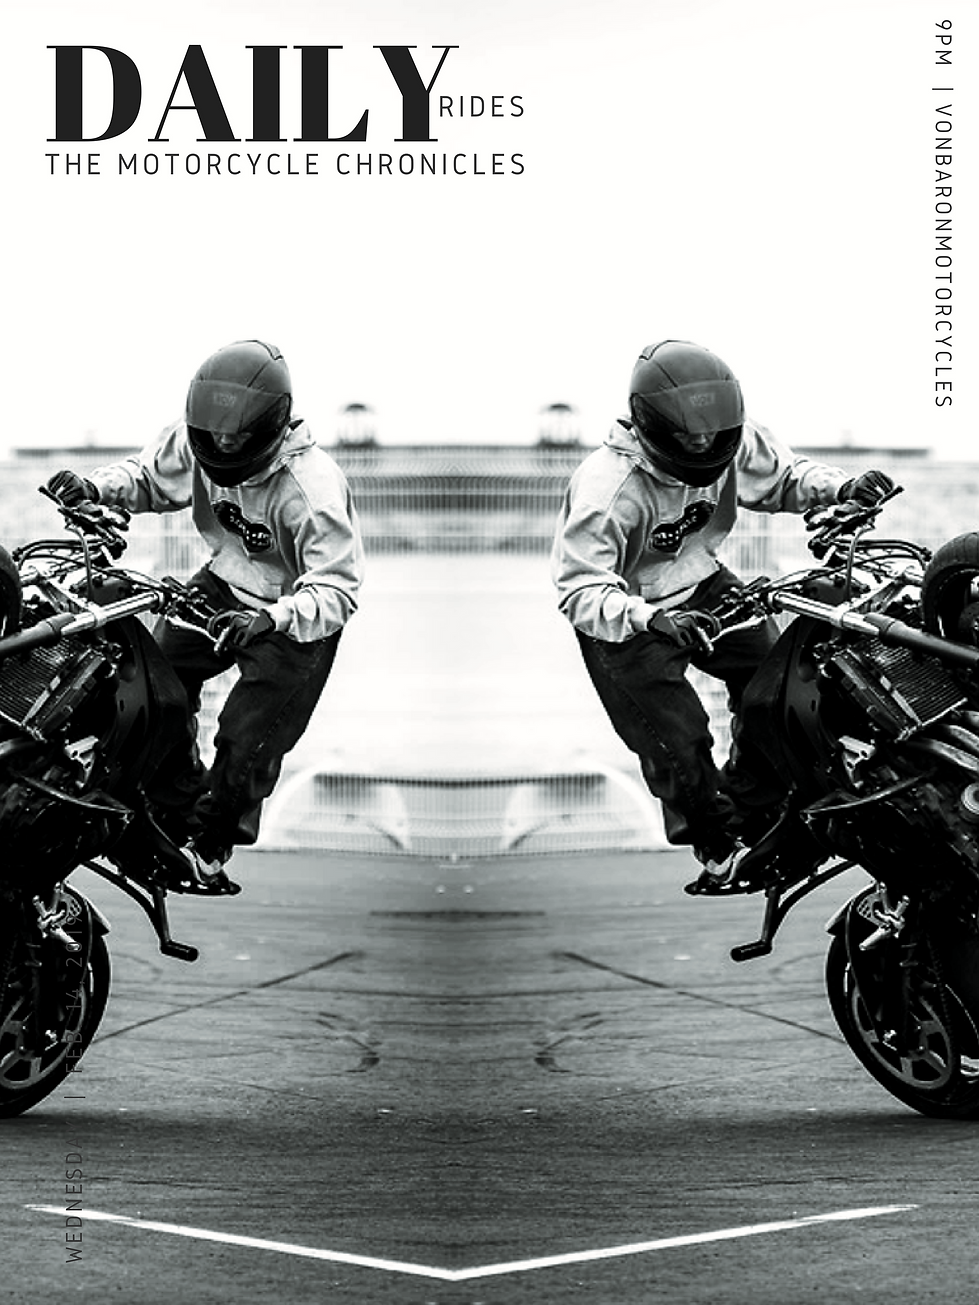 THE MOTORCYCLE CHRONICLES BY VON BARON MOTORCYCLES